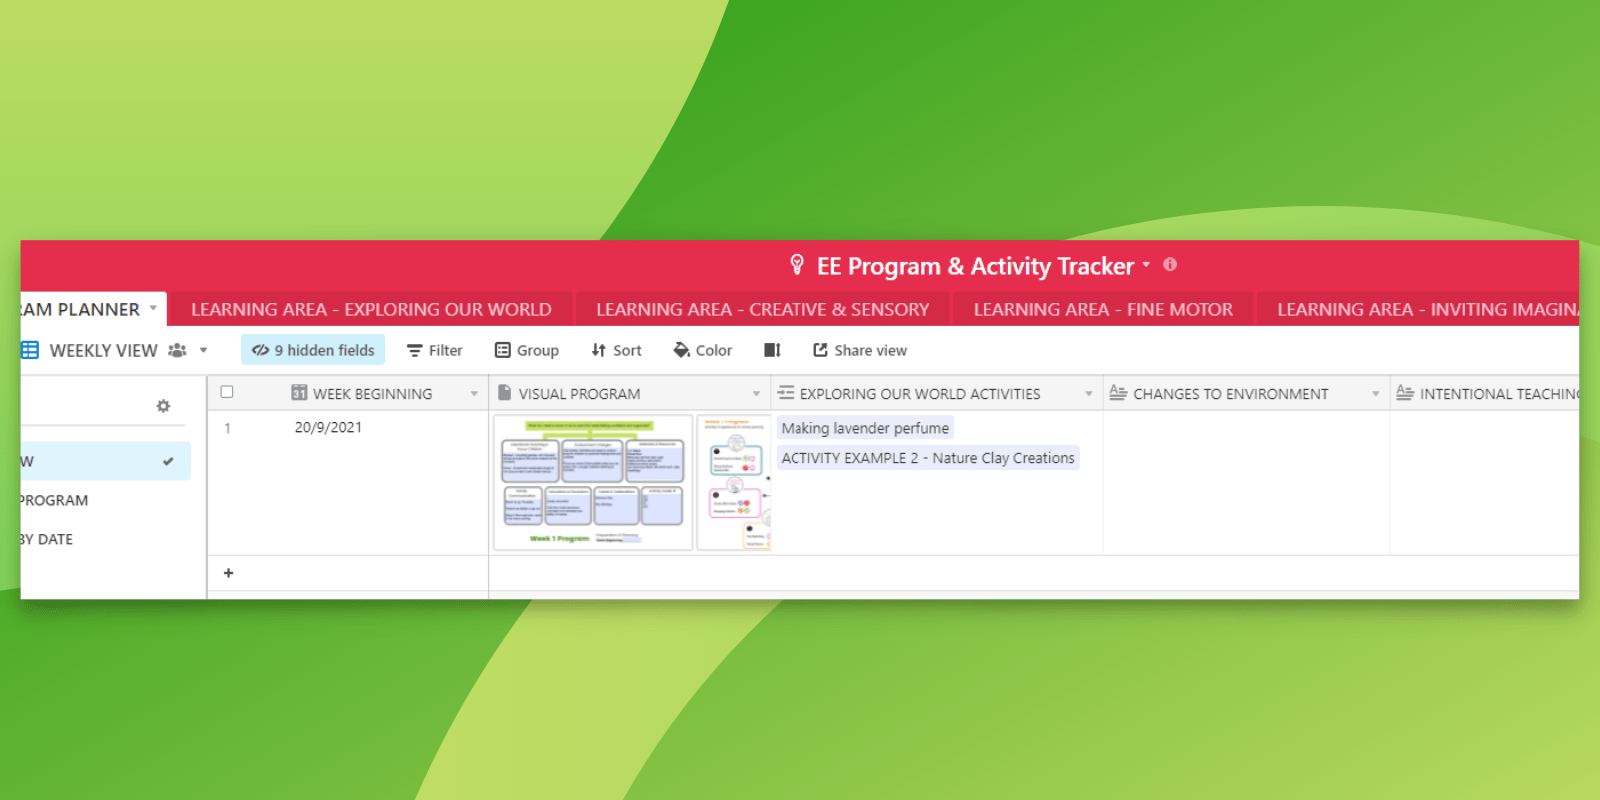 Easily reuse your previous activities and program plans